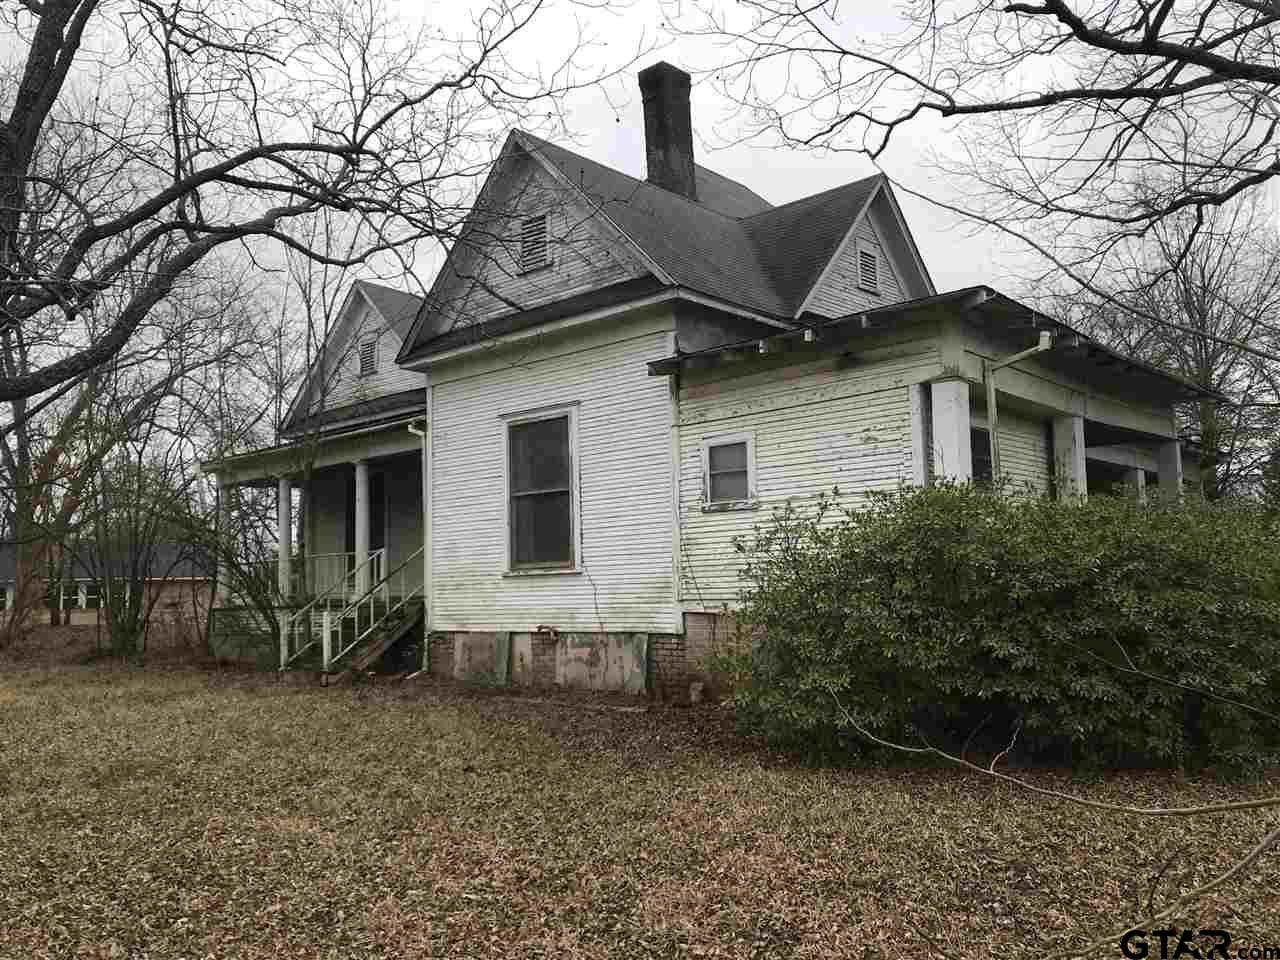 Go back in time with this vintage house built in 1903!  This home feature 3 bedroom and a bonus room upstairs, over 2500 sq ft of living, and sits on a corner lot with 6 extra lots to go with it.  This house is just waiting for someone to bring it back to life!  Call to schedule your showing today!